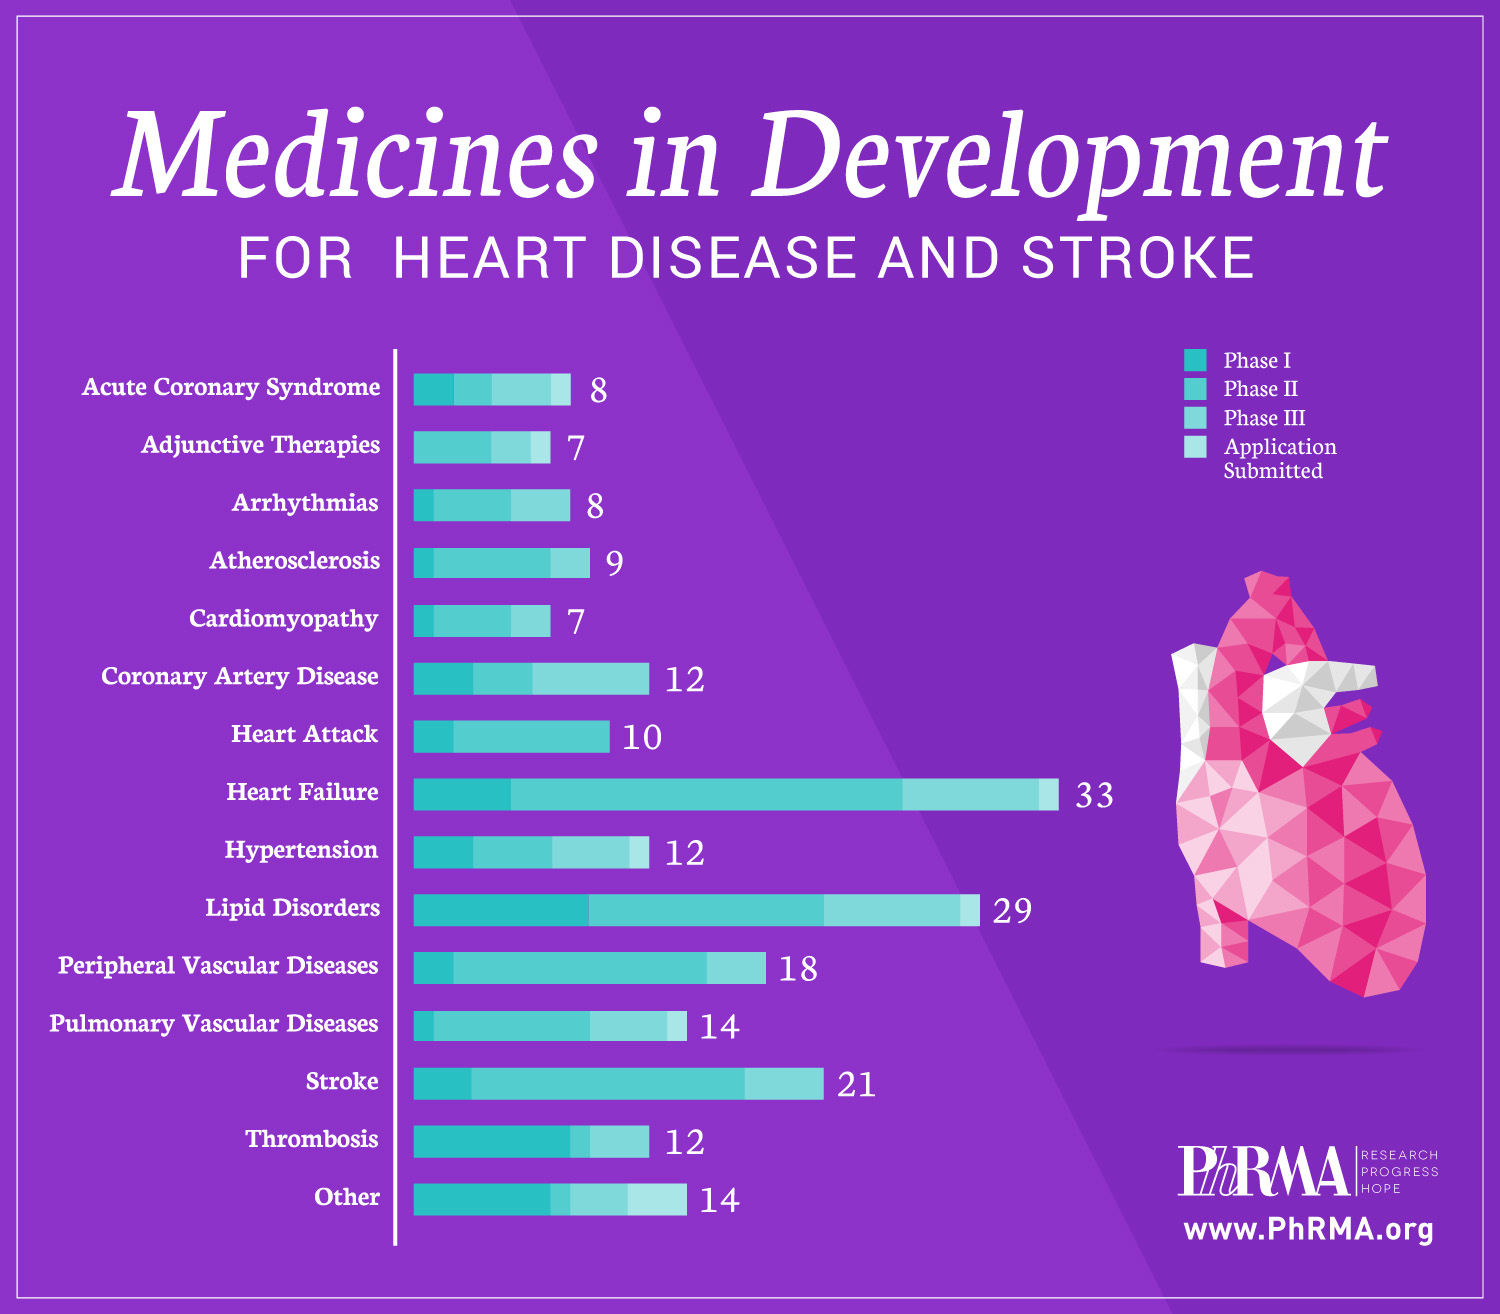 Phrma And The Association Of Black Cardiologists Report